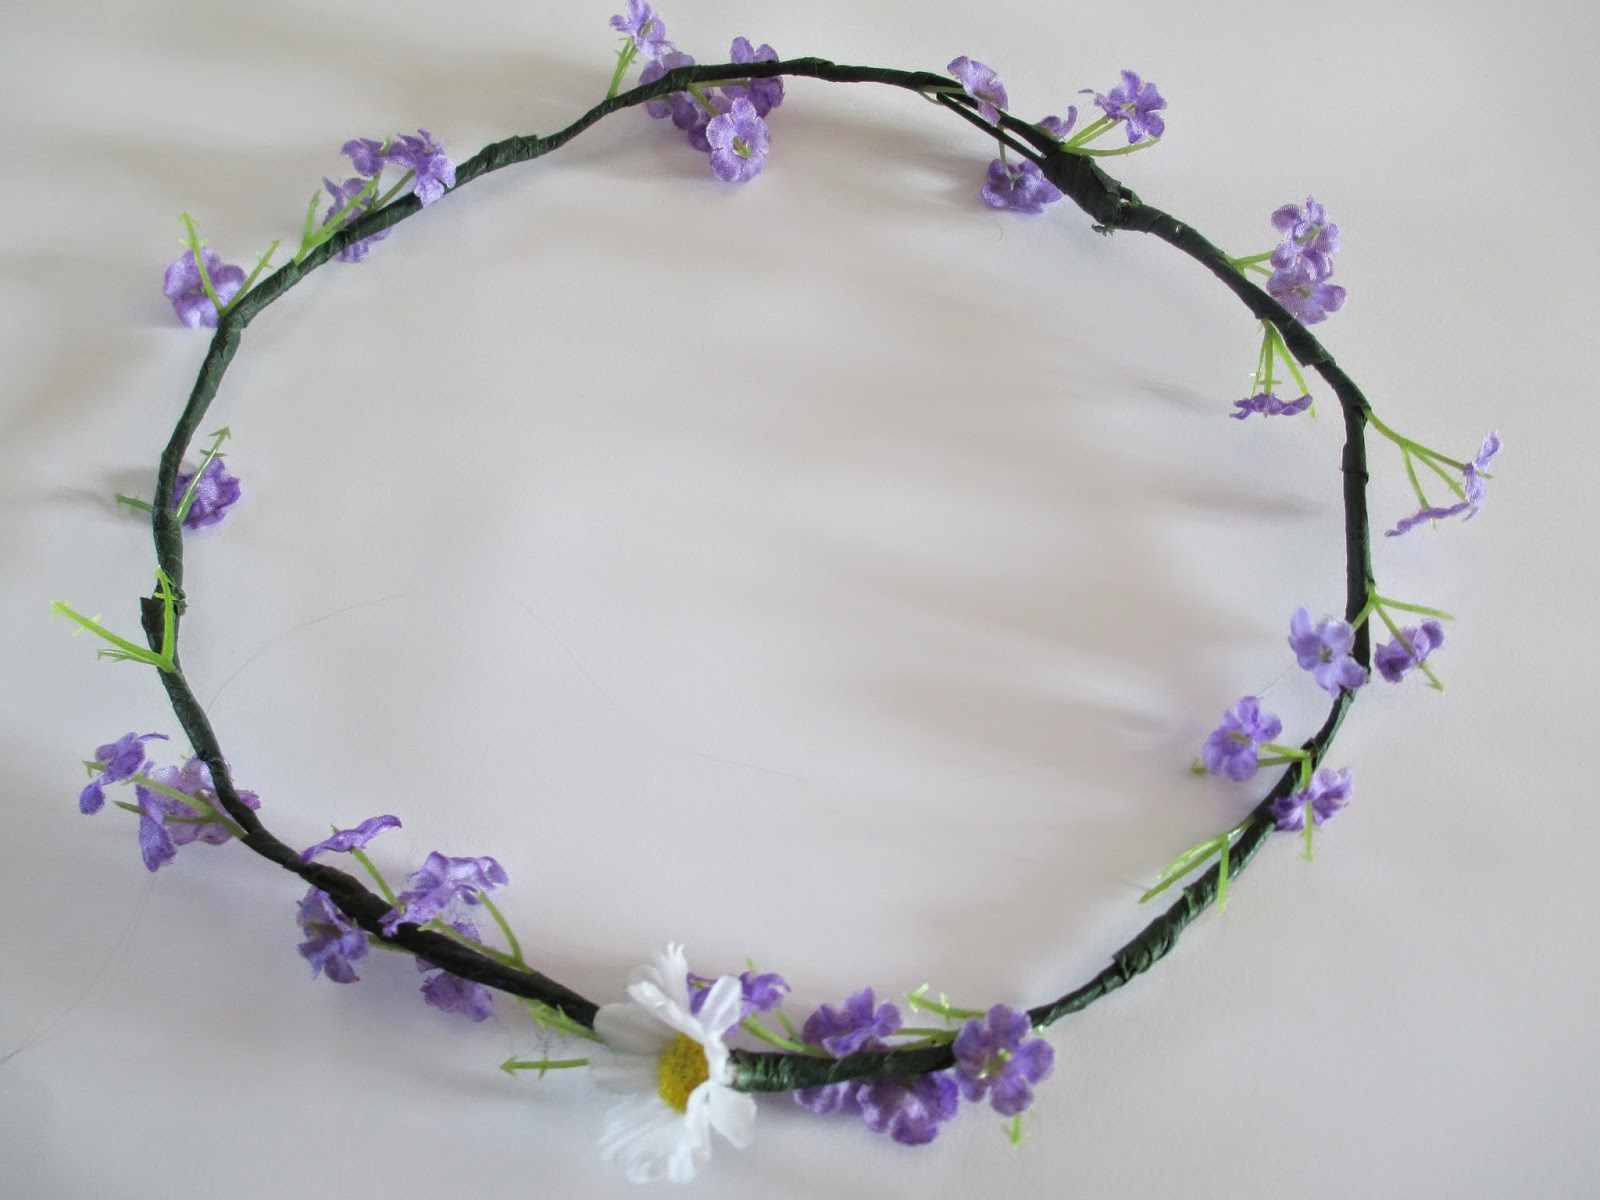 Tins little world diyupcycled flower crown diyupcycled flower crown another diy i need to do something different but i just find myself doing diys anyway so why not share them izmirmasajfo